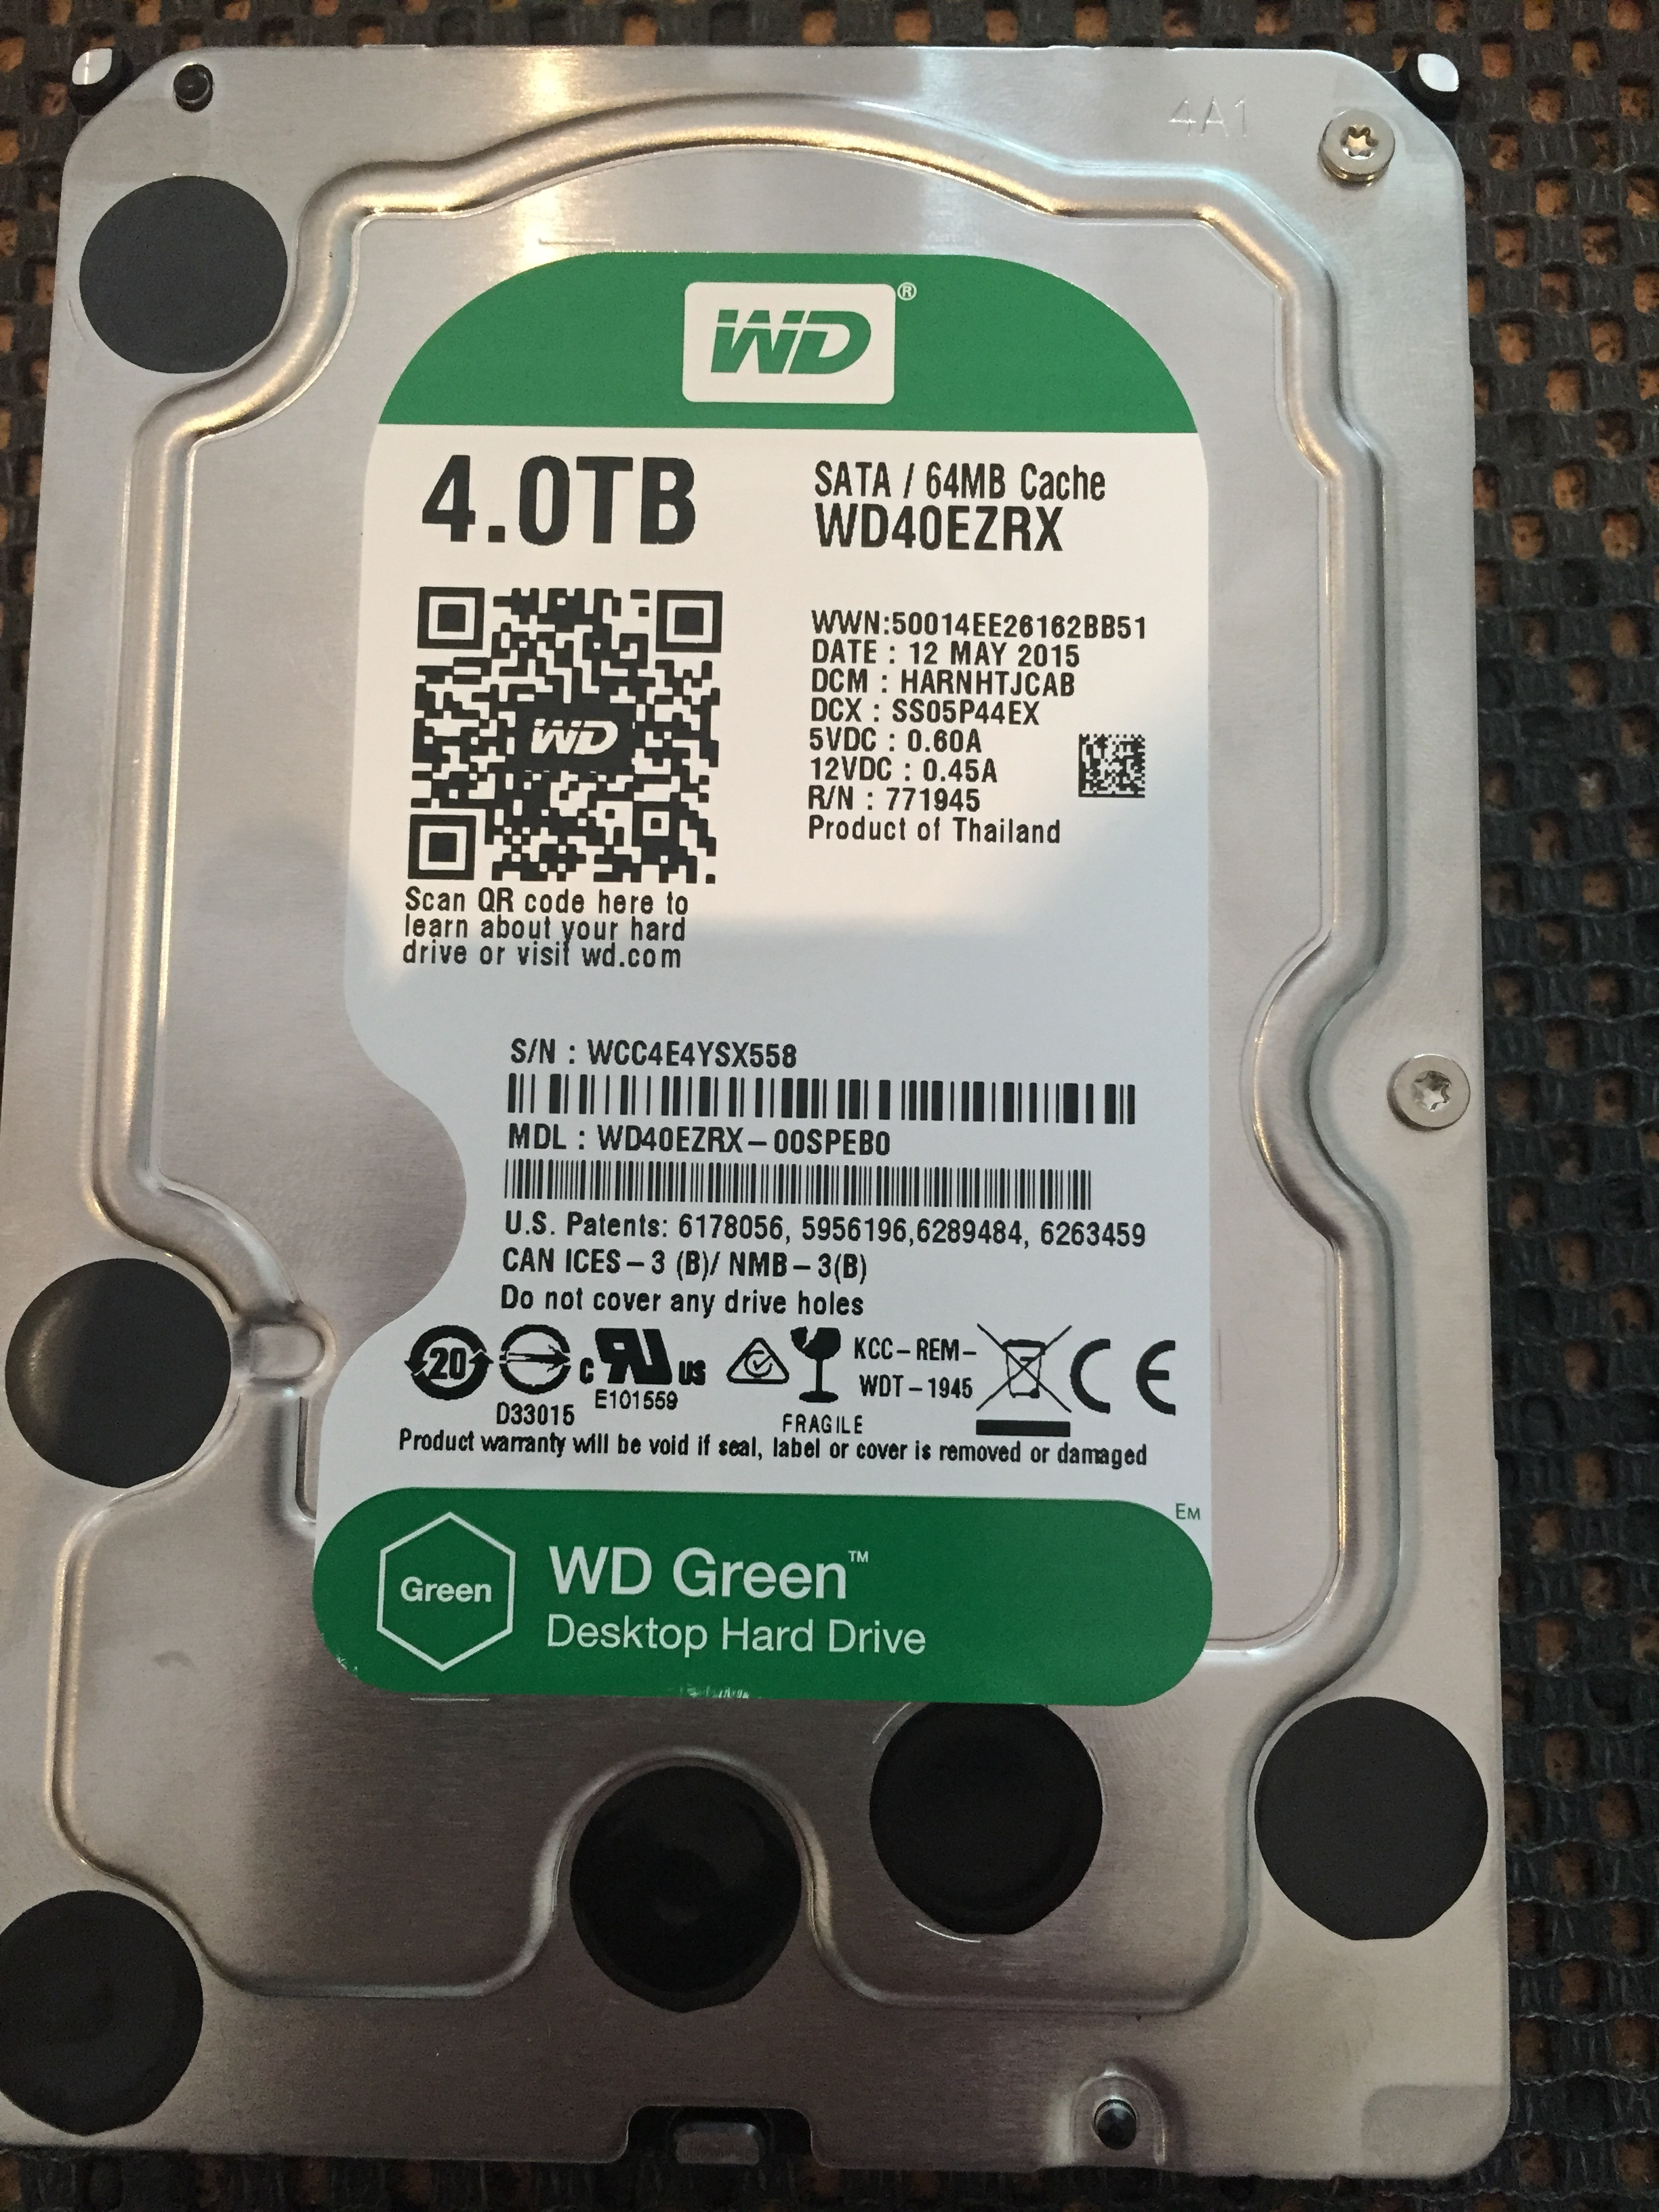 For Data Recovery on this clicking western digital 4TB we need to open it up and change the heads (little parts inside that read the data) When they are dropped these parts take the most damage and stop reading data. We need to replace them with good ones.